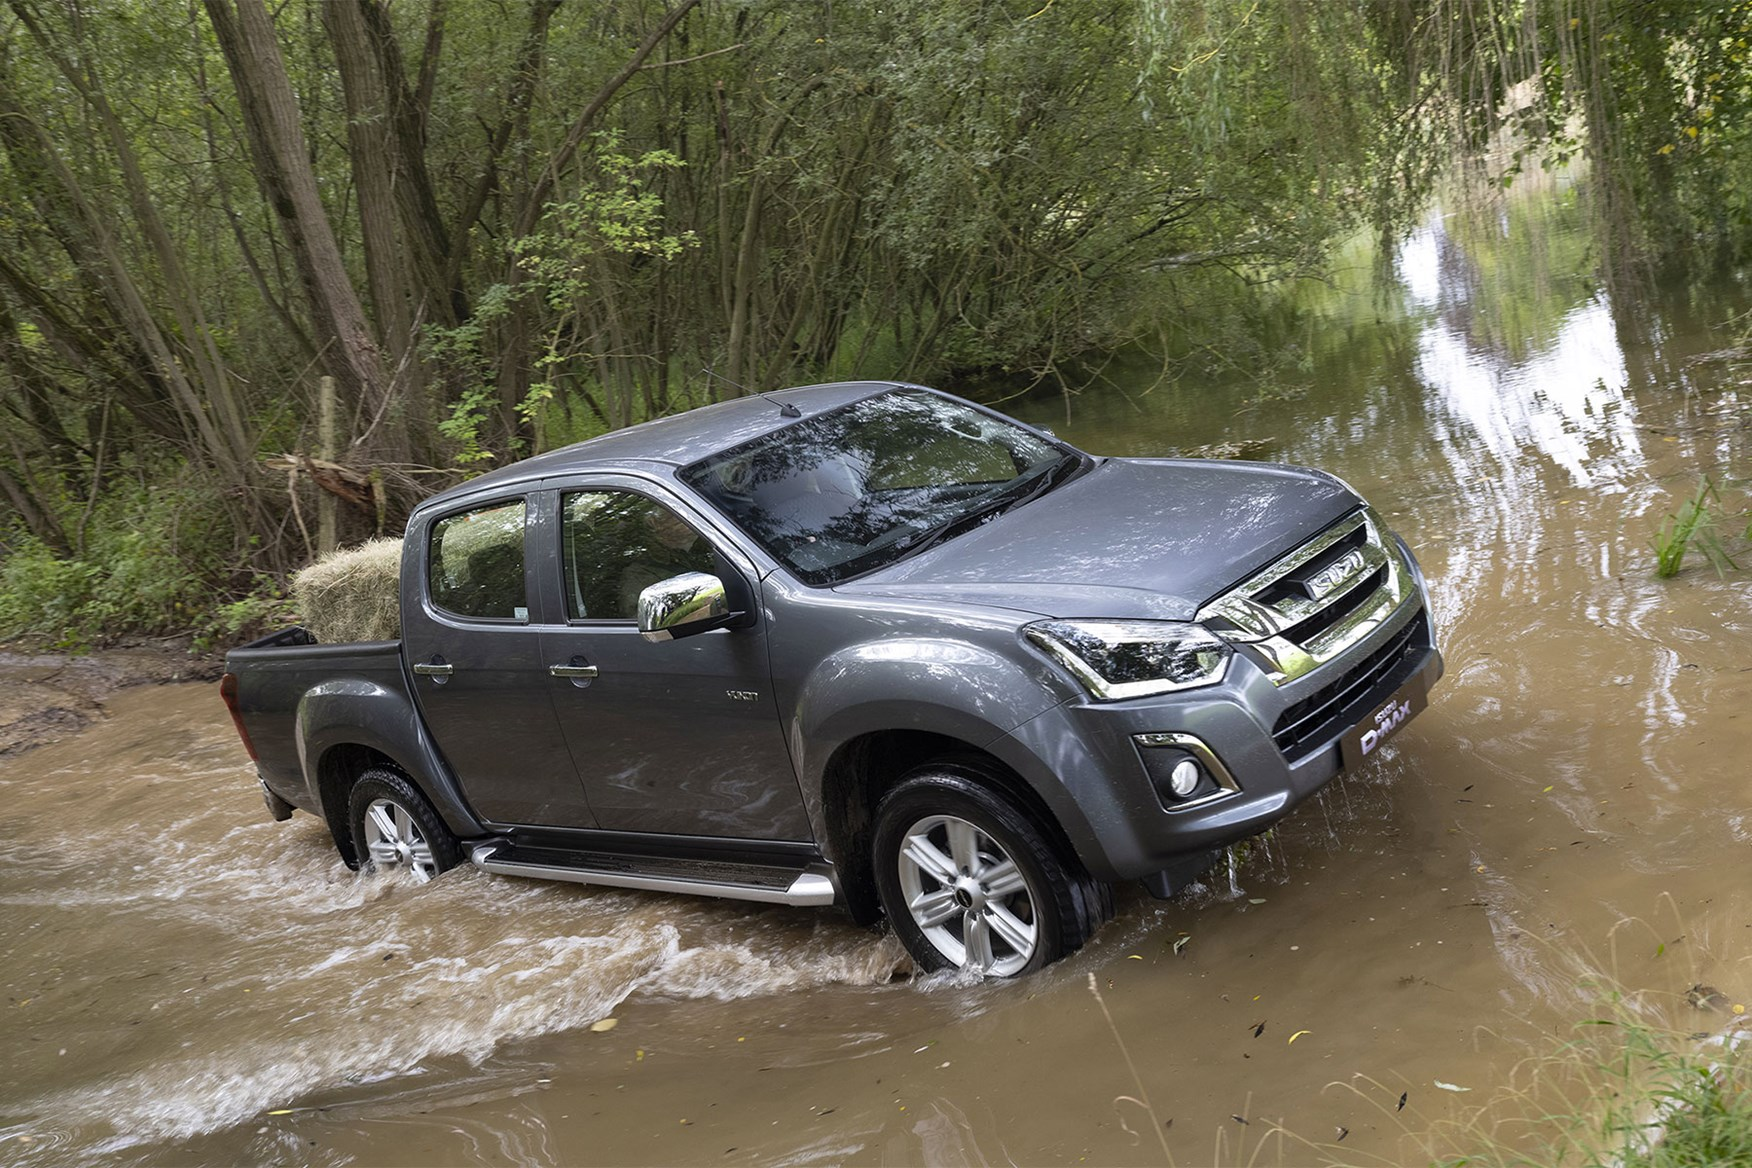 Isuzu D-Max off-road - splashing through river with hay bale in load area